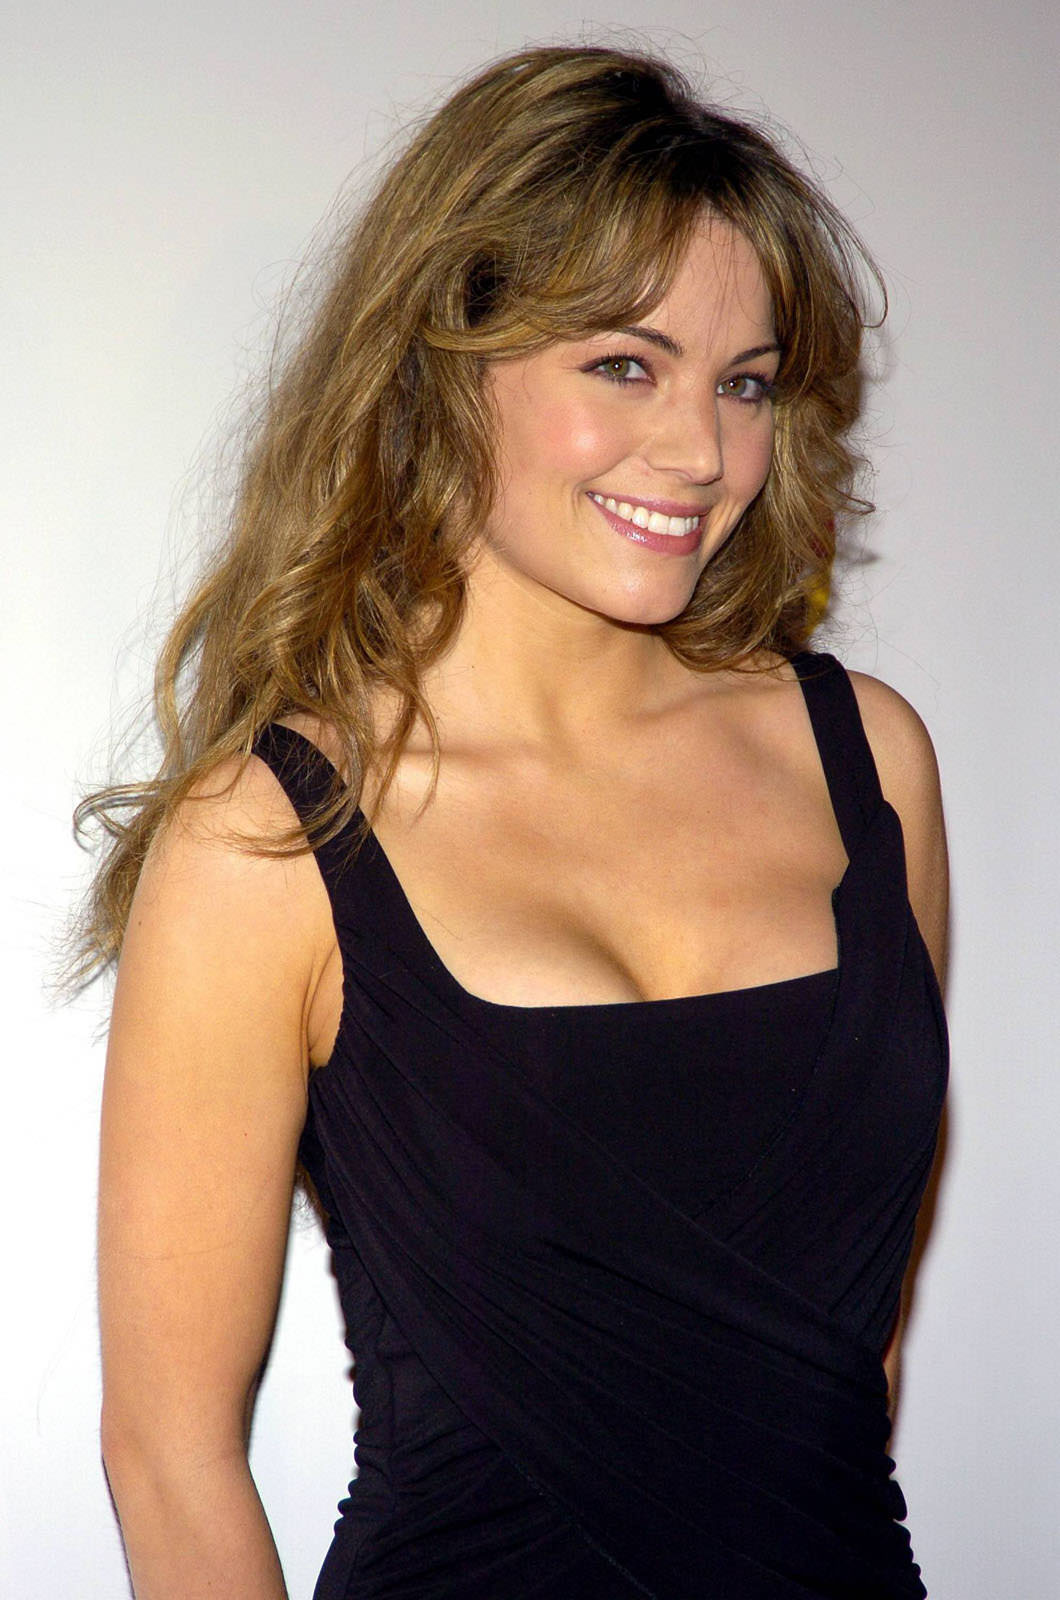 Erica Durance Photo Gallery